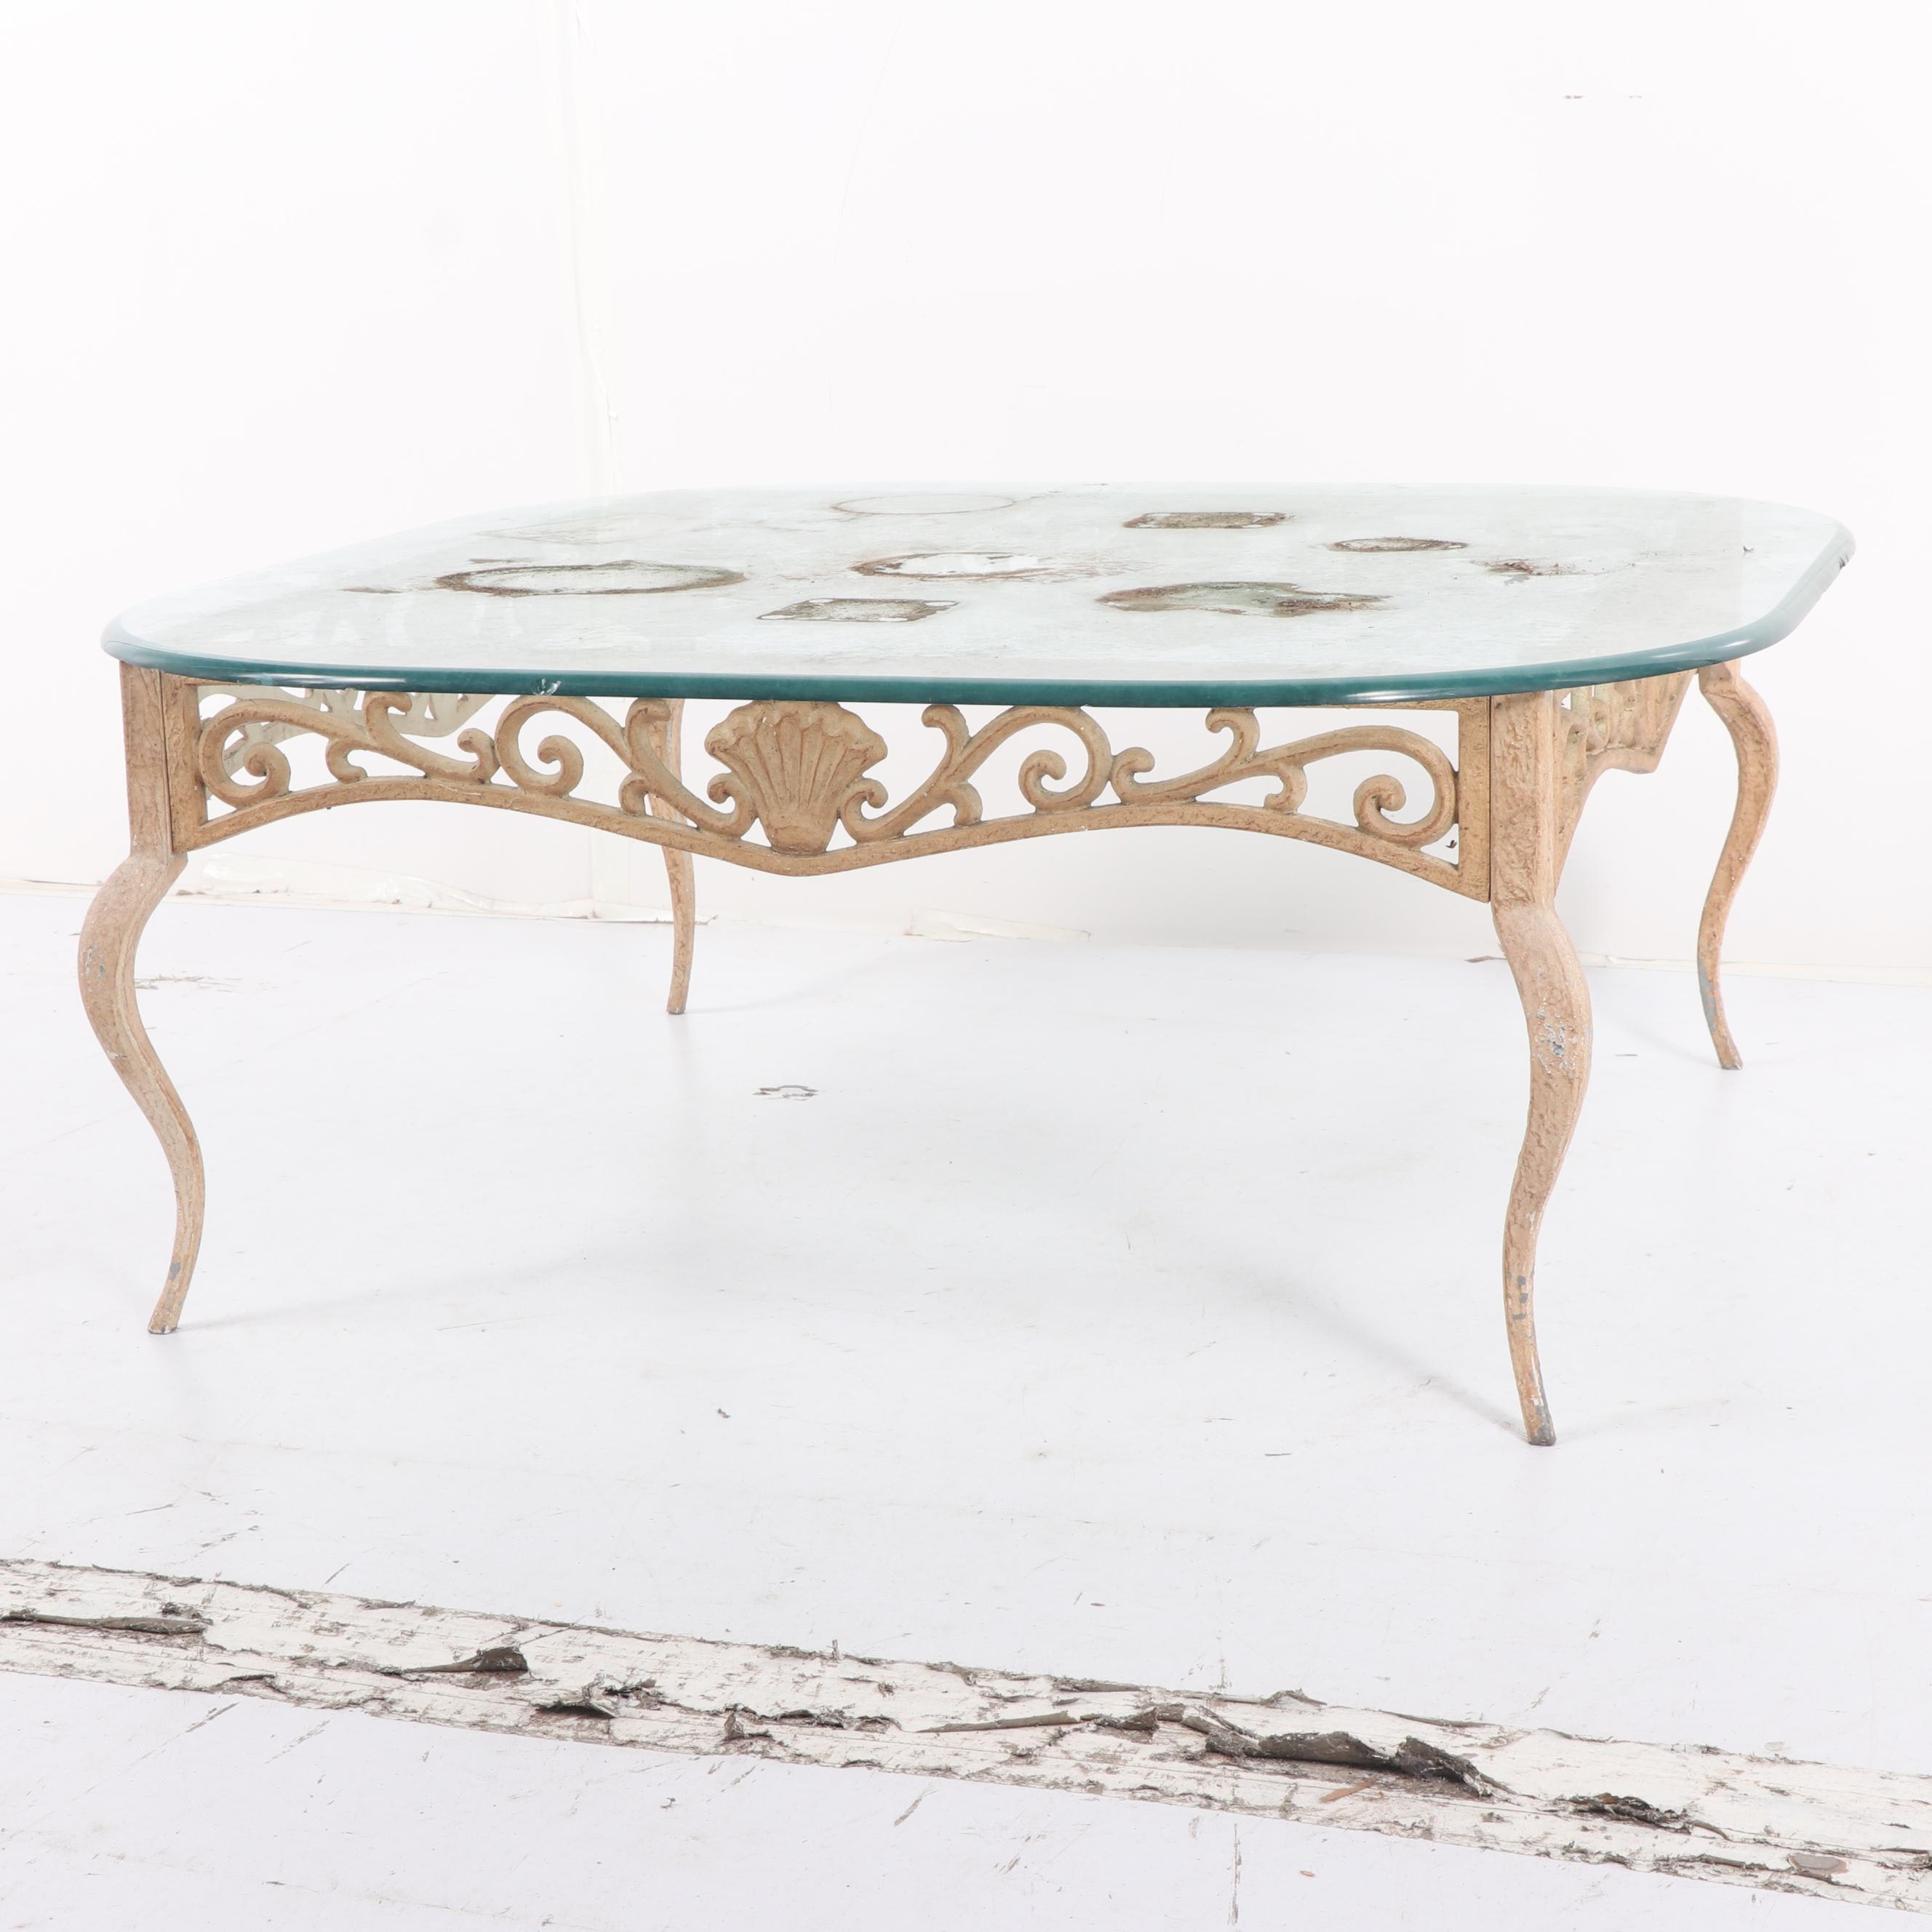 Shell and Arabesque Motif Wrought Iron Coffee Table with Glass Top